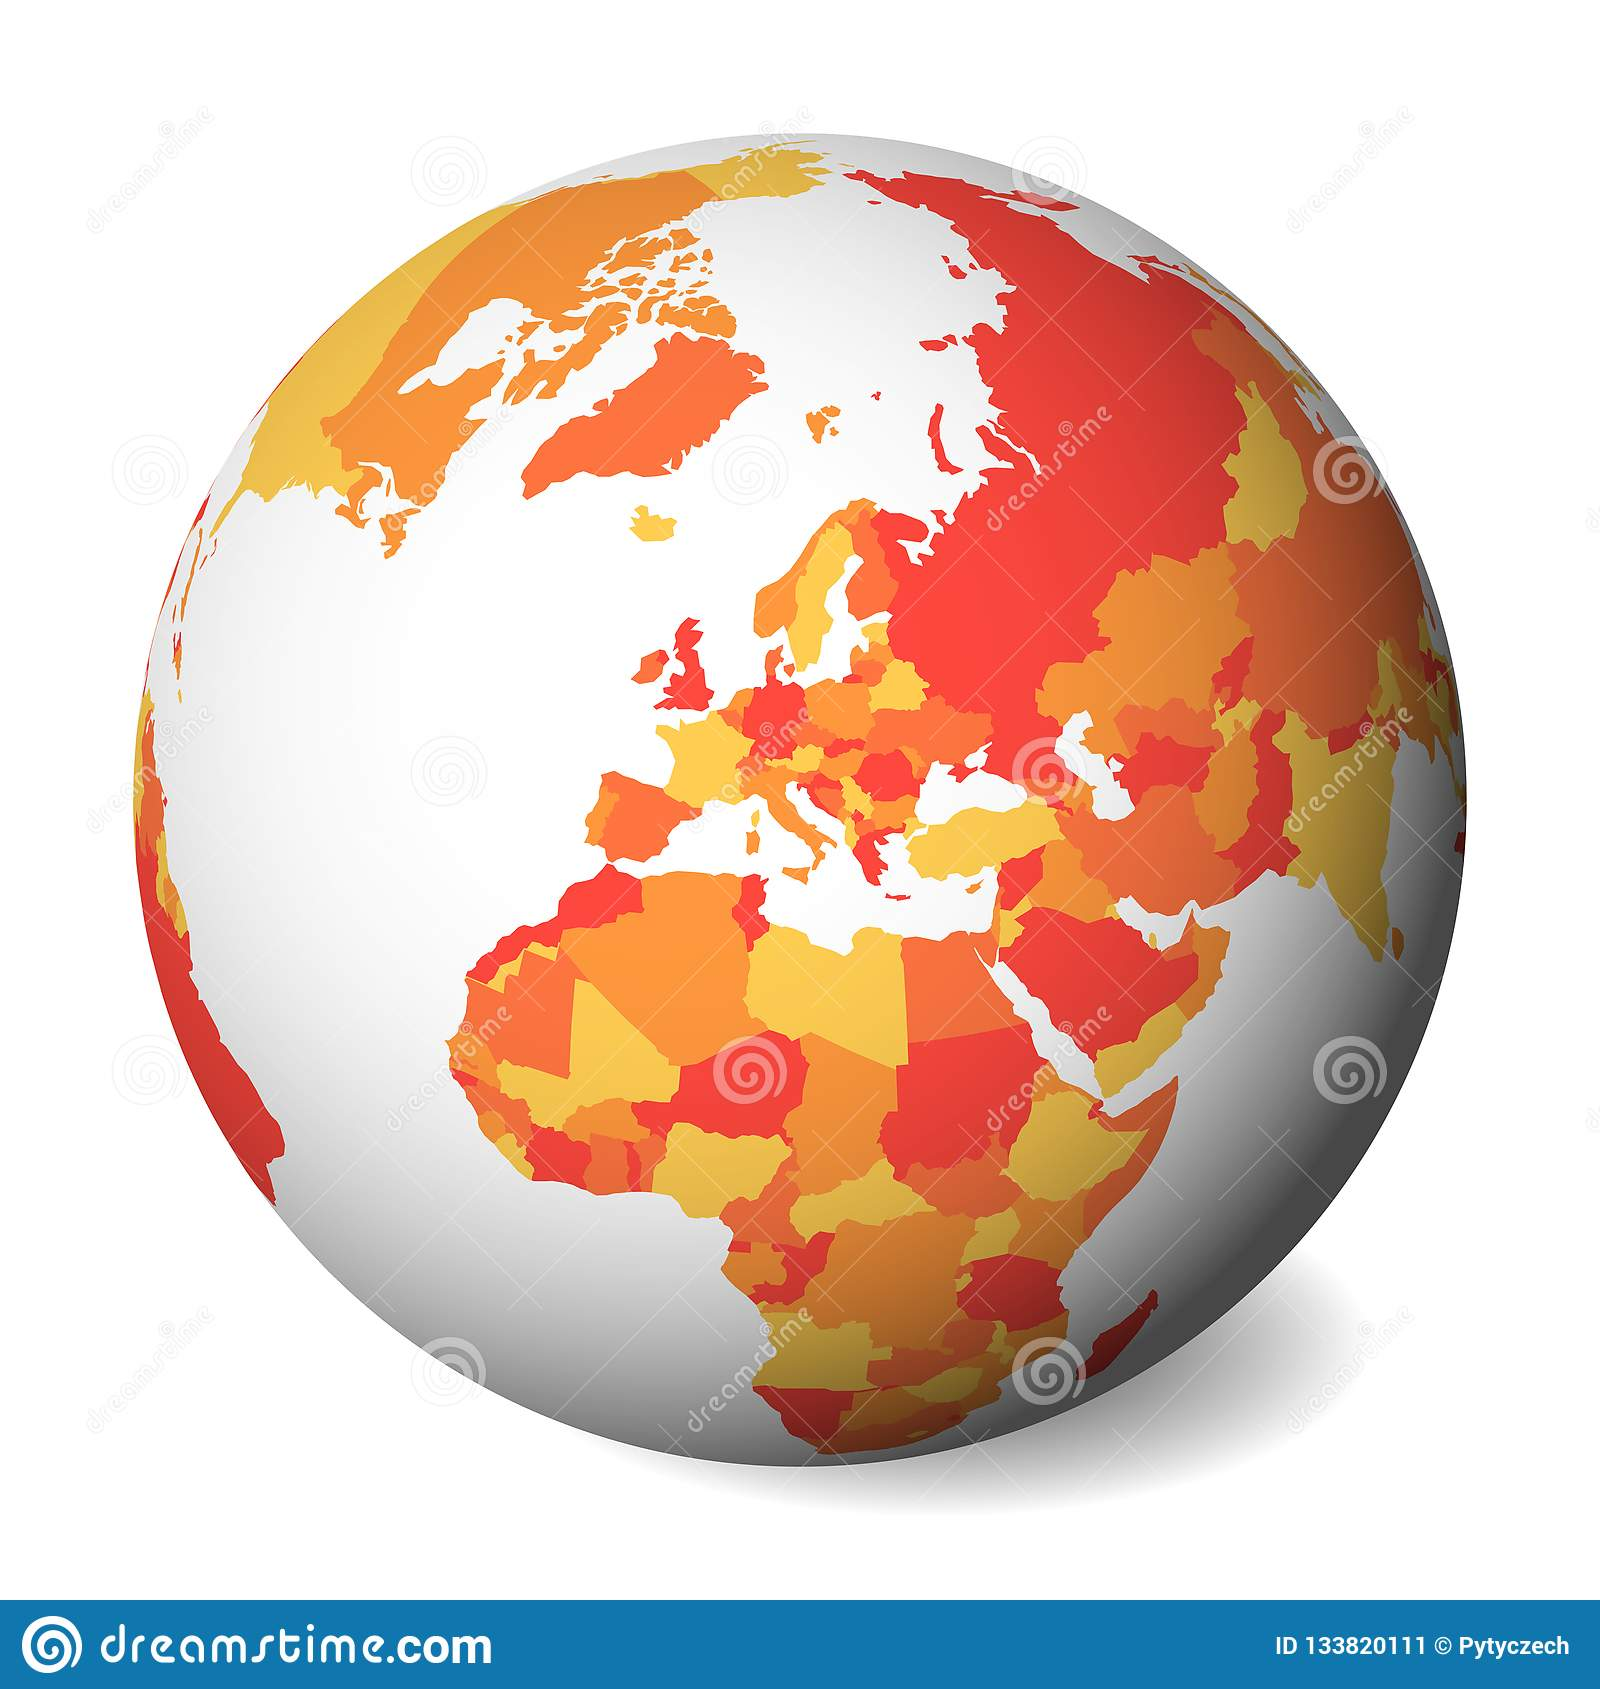 Political Map Of Europe Blank.Blank Political Map Of Europe 3d Earth Globe With Orange Map